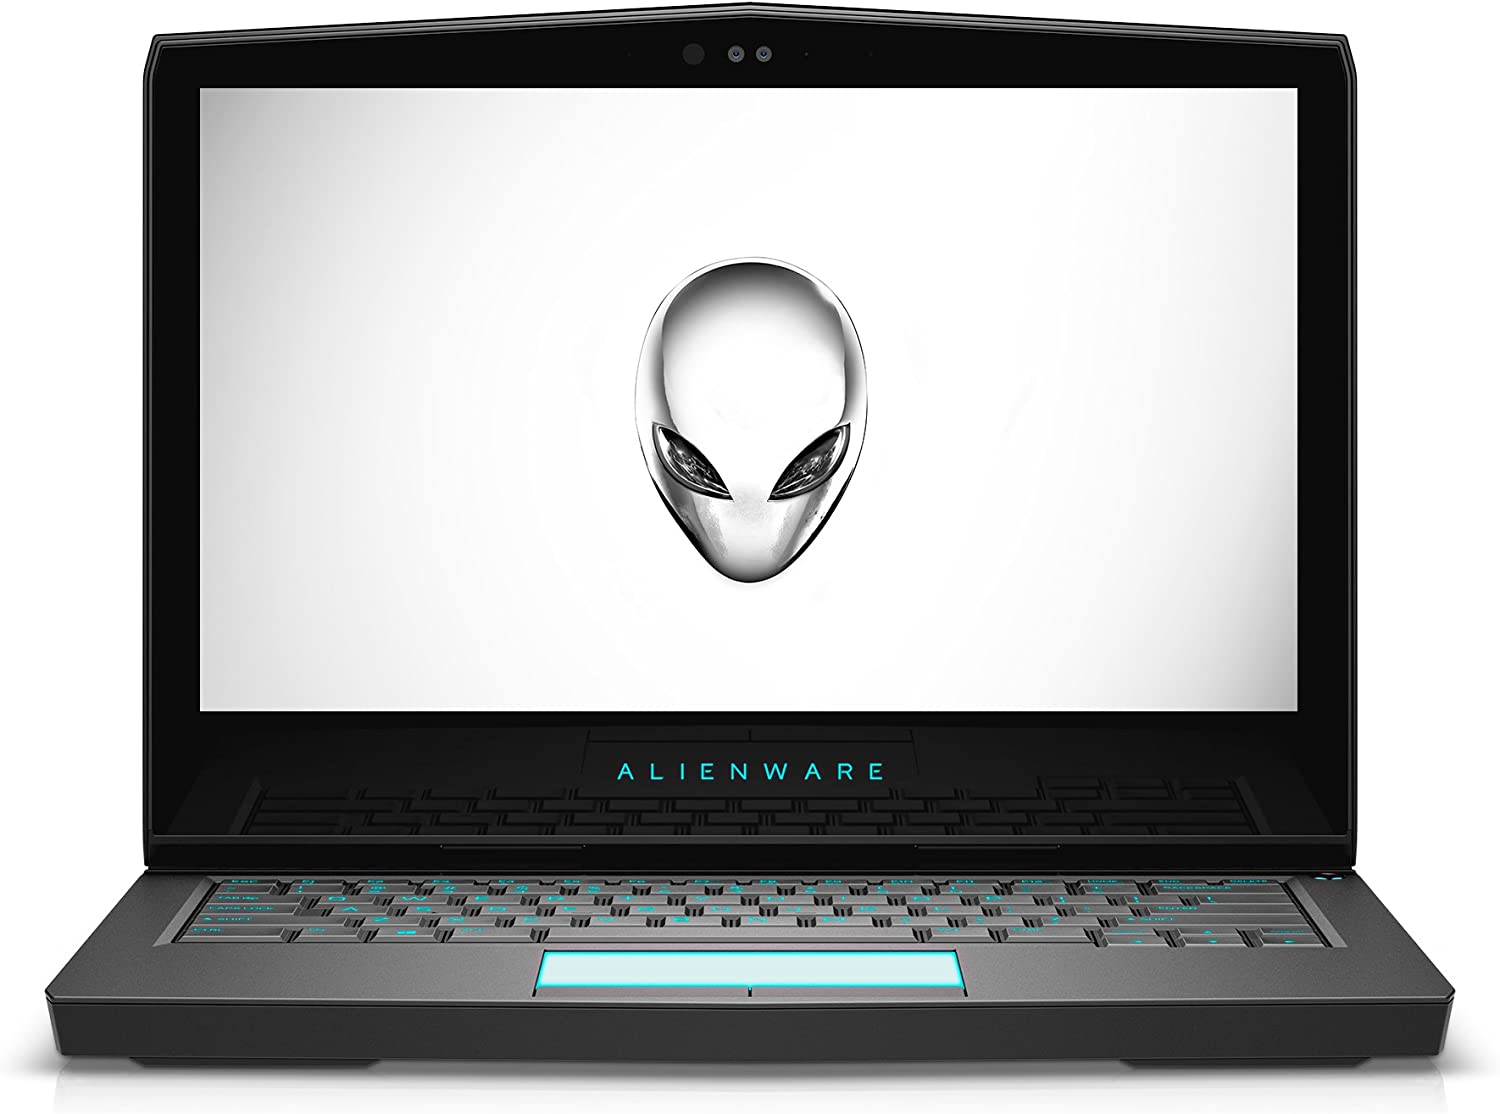 "Alienware AW13R3-7420SLV-PUS 13.3"" Gaming Laptop (7th Generation Intel Core i7, 16GB RAM, 512 SSD, Silver) VR Ready with NVIDIA GTX 1060"